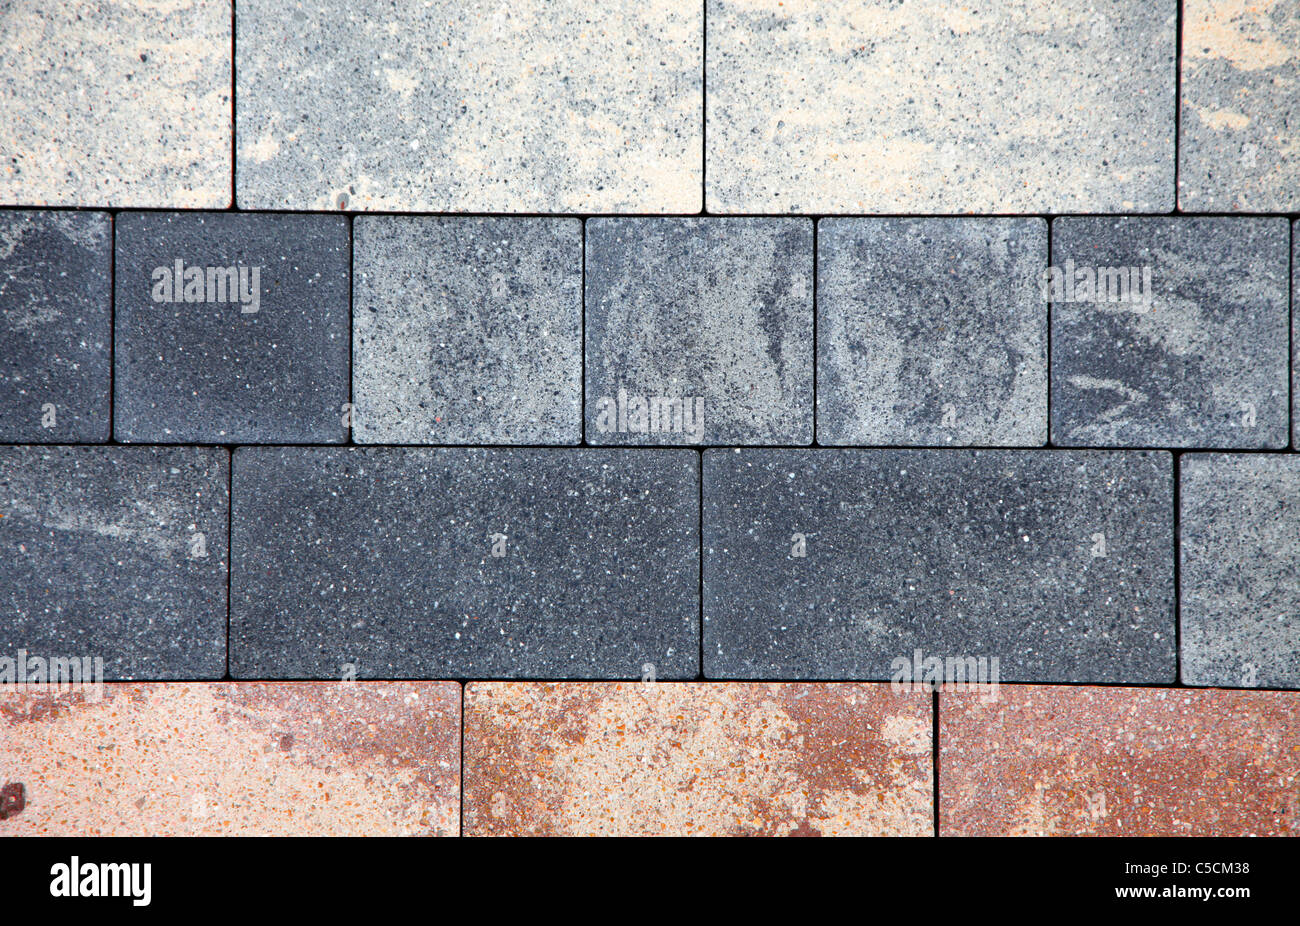 Stony soil, different designs, type of stones. Floor covering ...